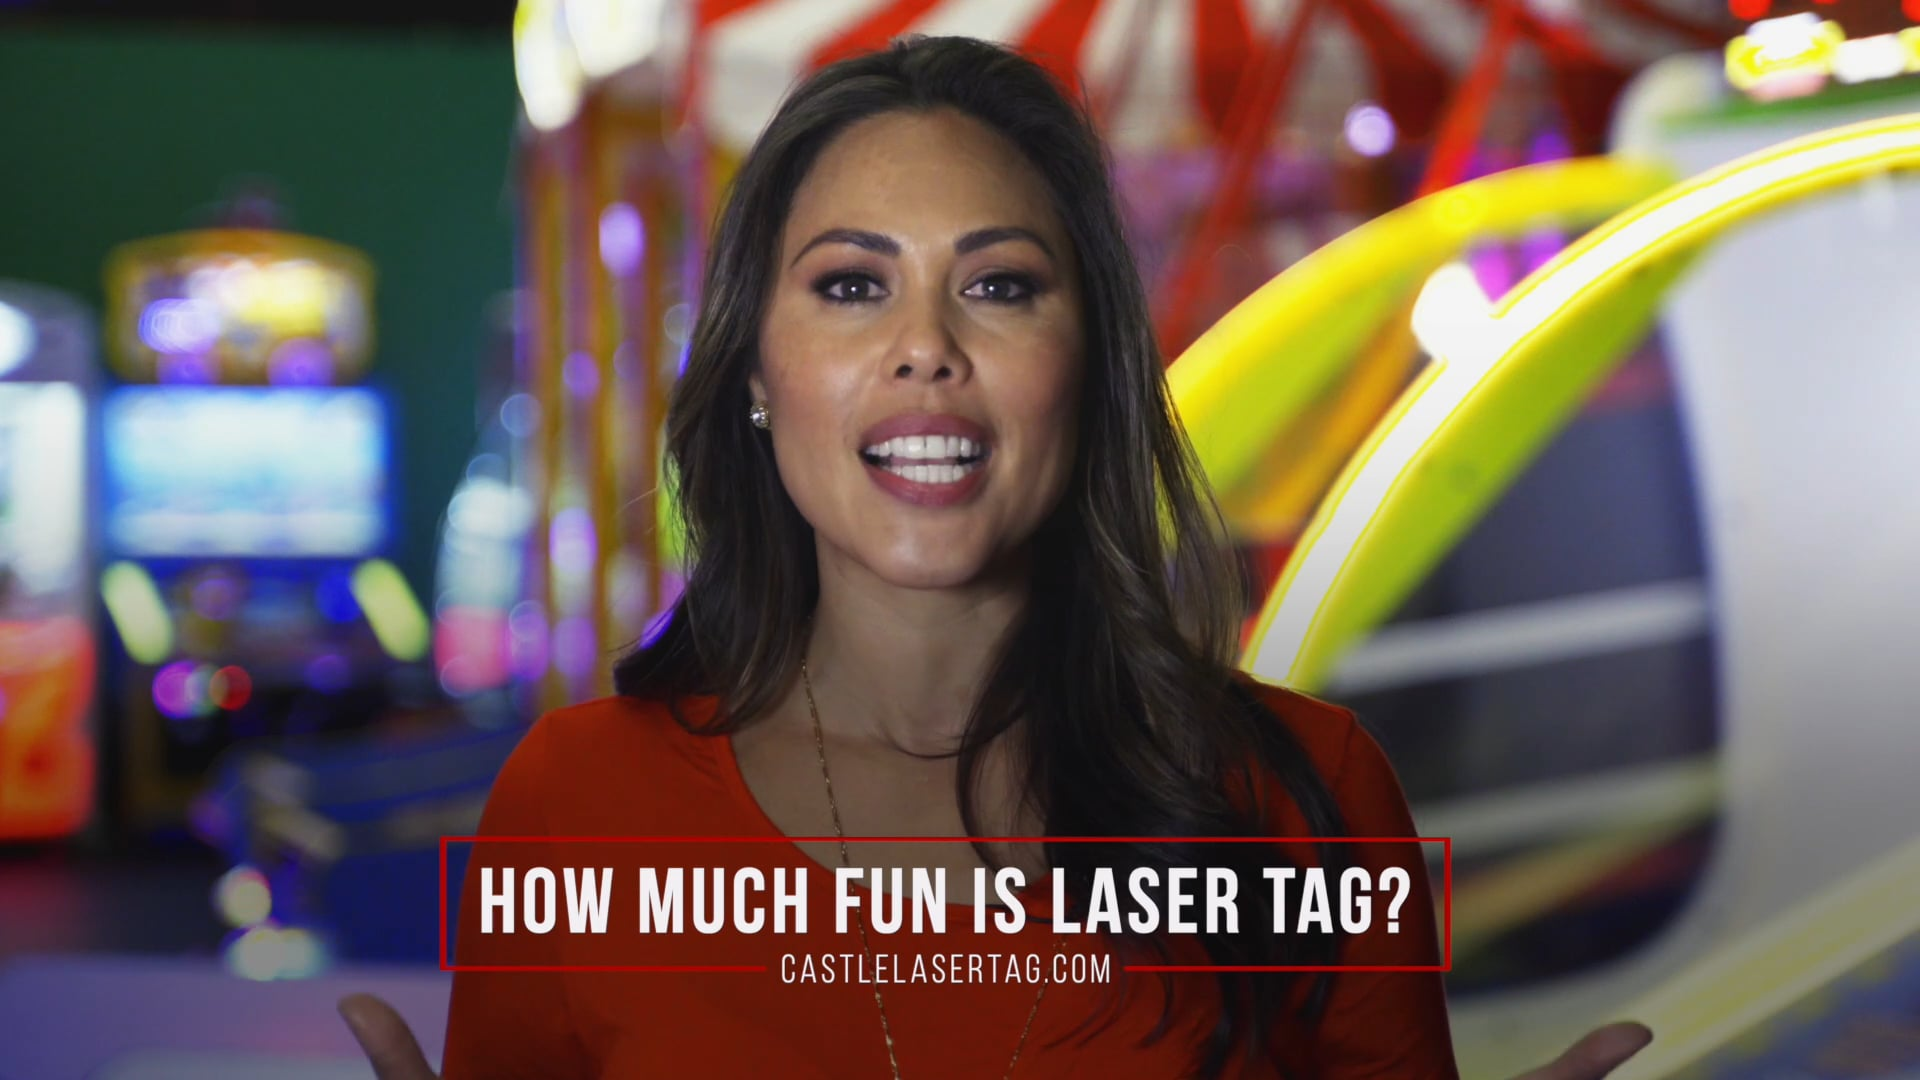 How much fun is laser tag?